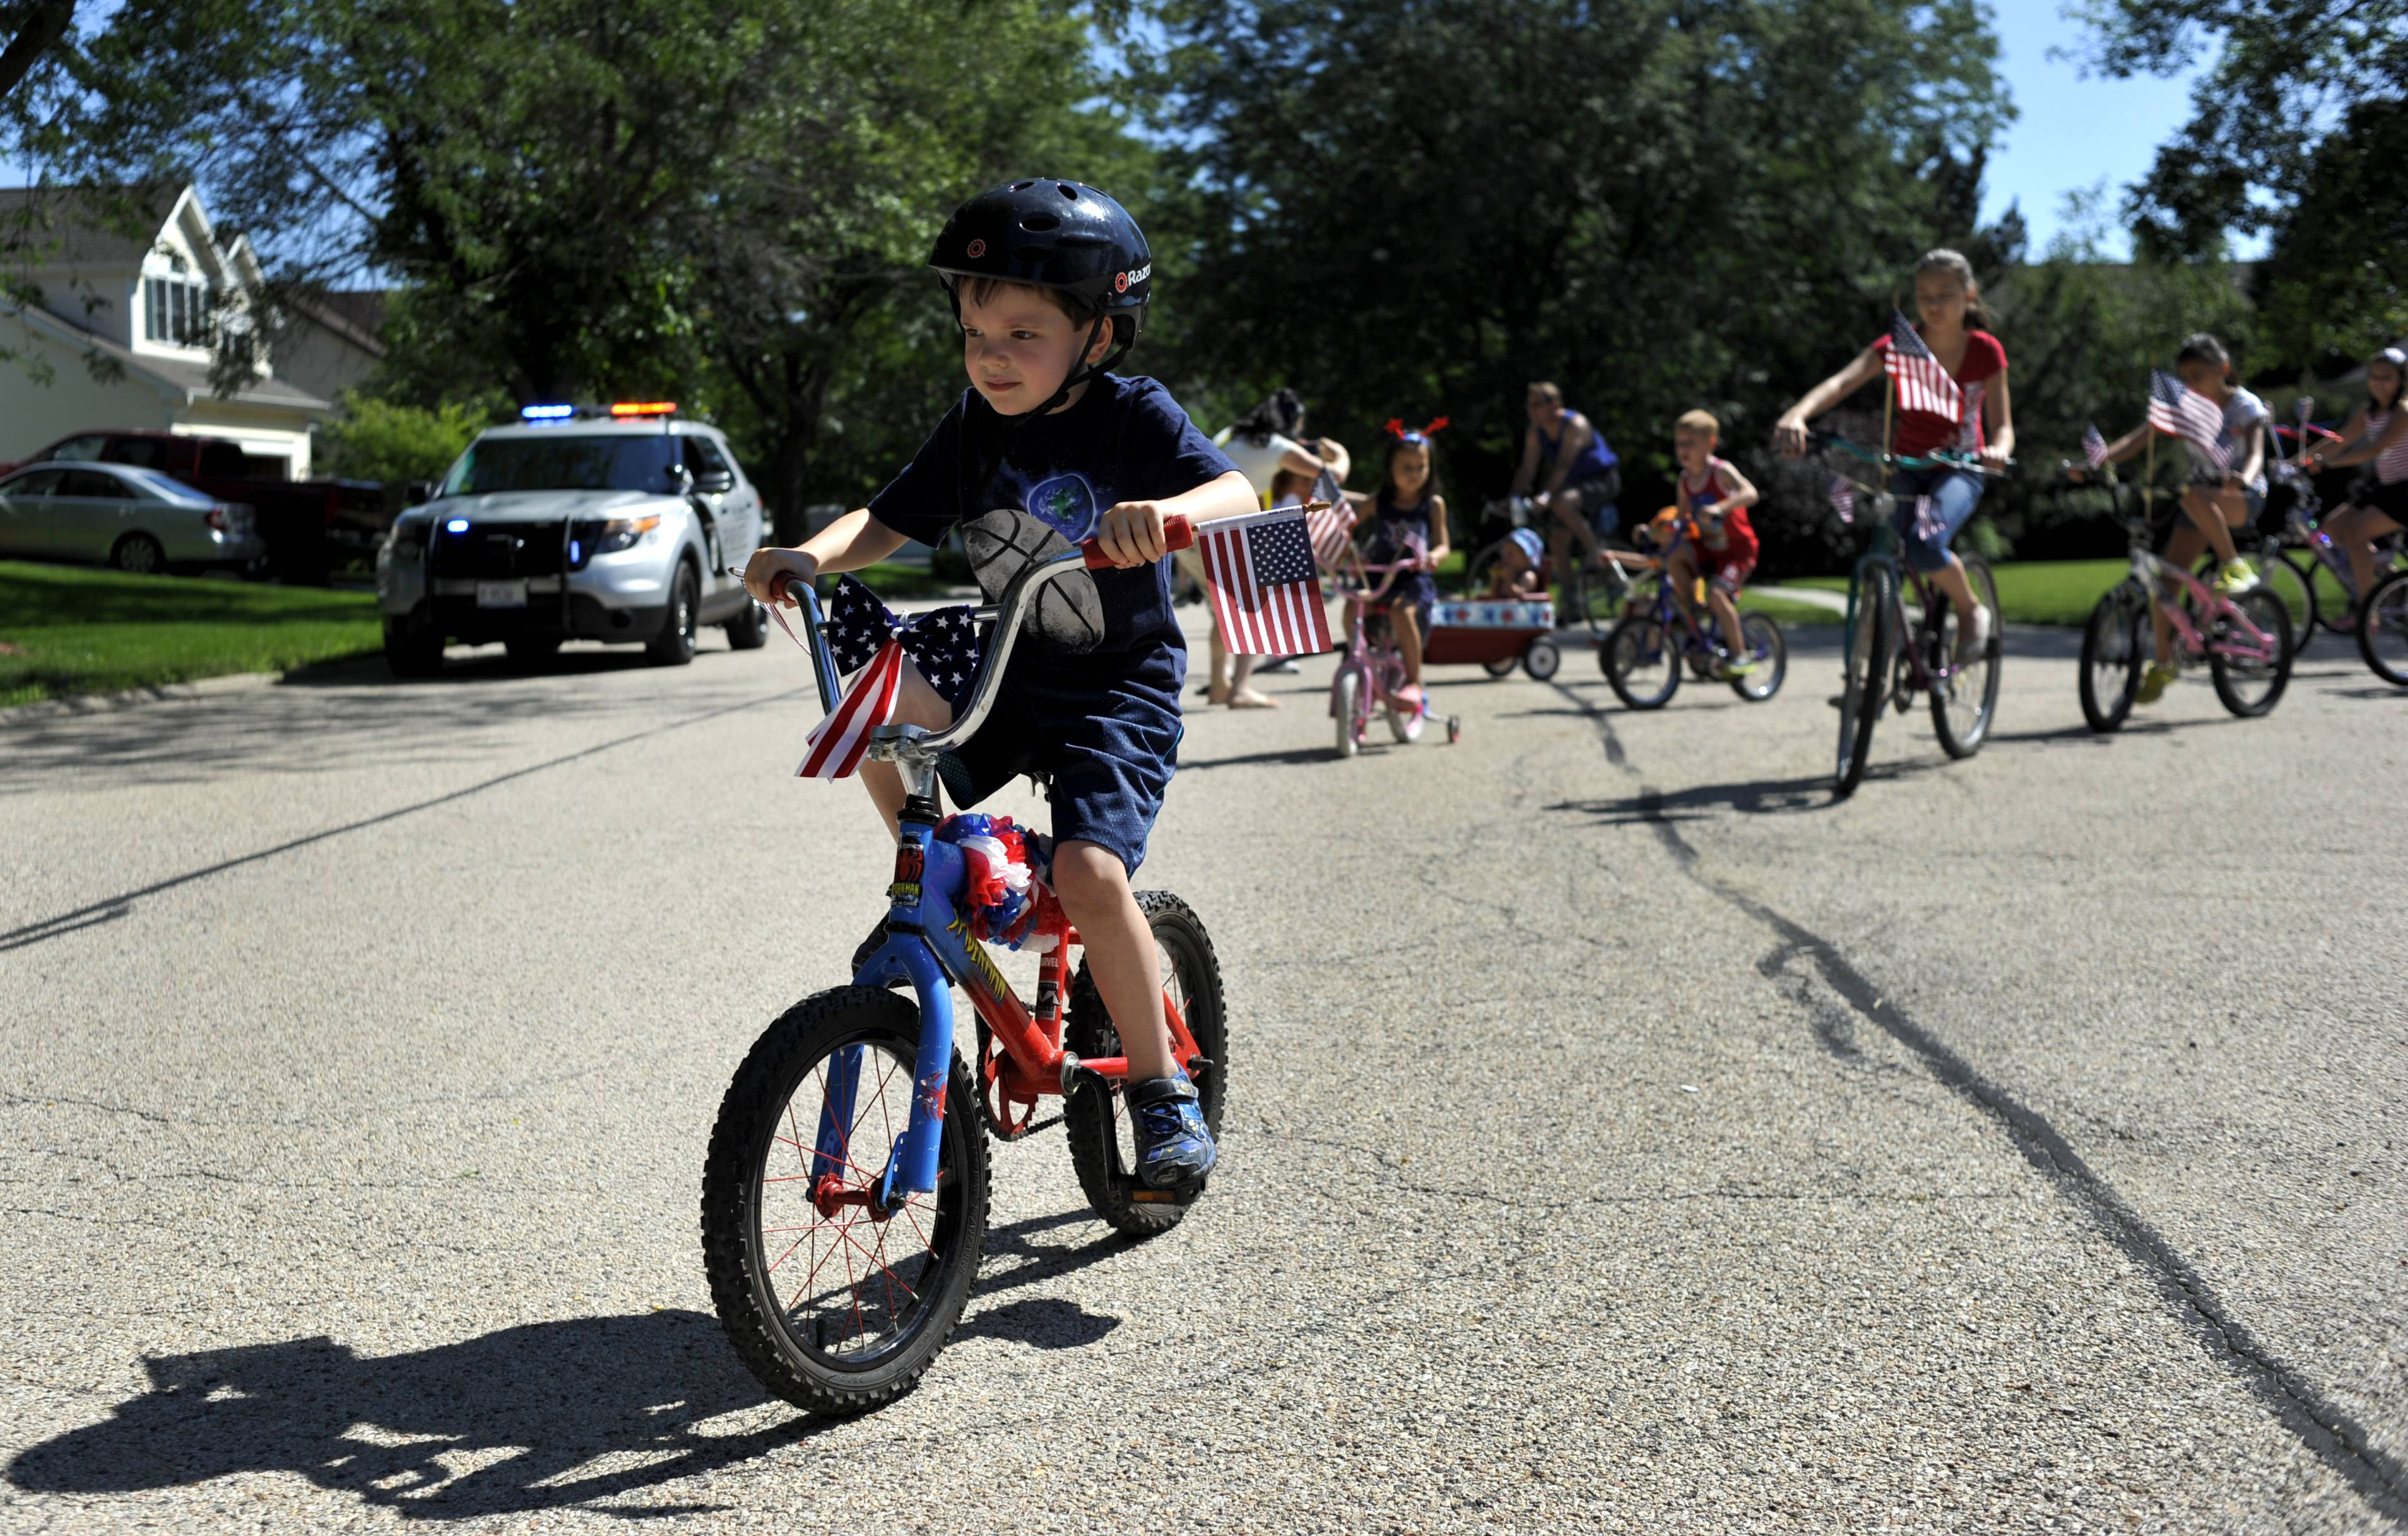 Ben Dawson, 5 of West Dundee rides his bike decorated with American flags at the Tartans/Hills neighborhood's annual Fourth of July kids' bike parade in West Dundee. The annual parade began in 1991 and is organized by the neighborhood, with Tim and Elizabeth Ward heading the organization of the event for the past few years.